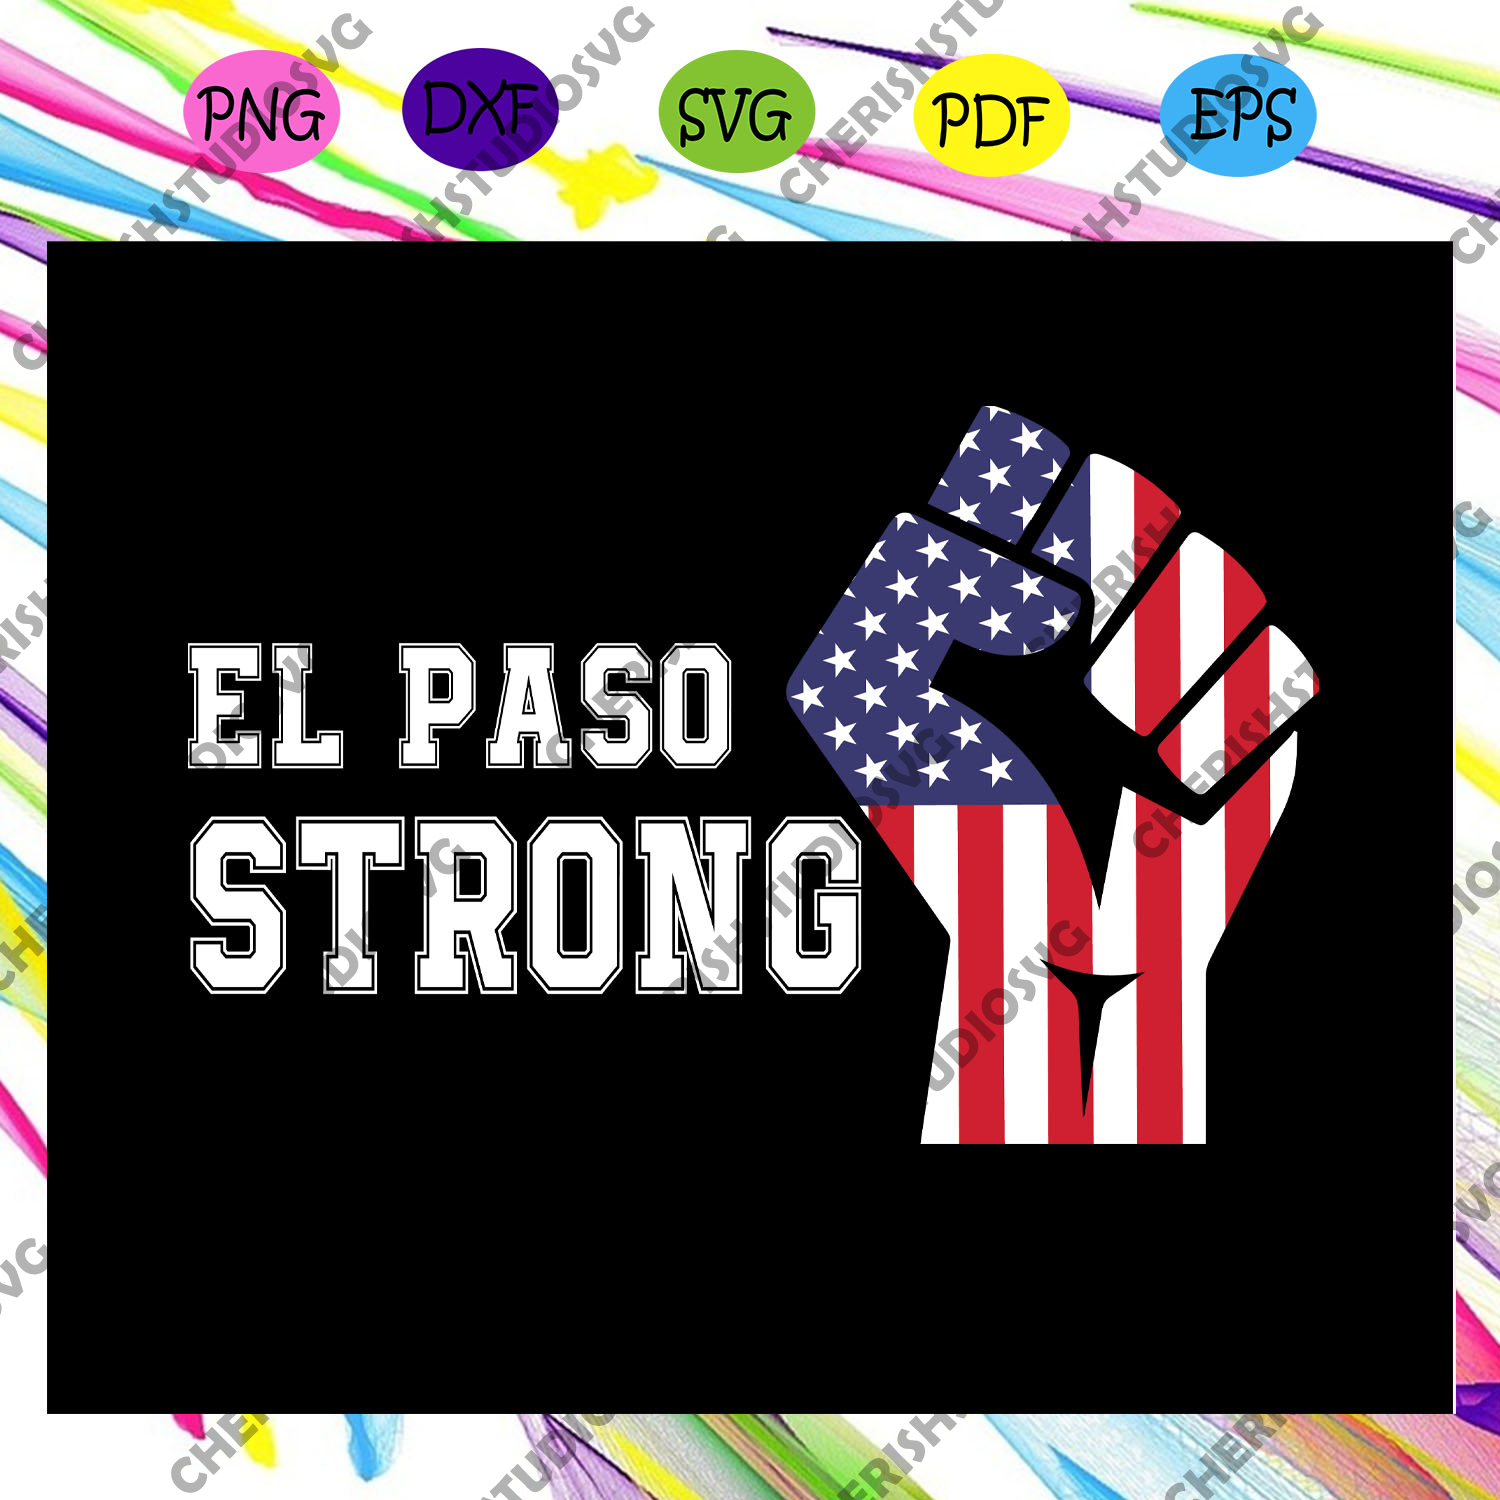 El paso strong, el paso shooting svg, el paso texas shooting t-Shirt, el paso strong shirt,trending svg For Silhouette, Files For Cricut, SVG, DXF, EPS, PNG Instant Download